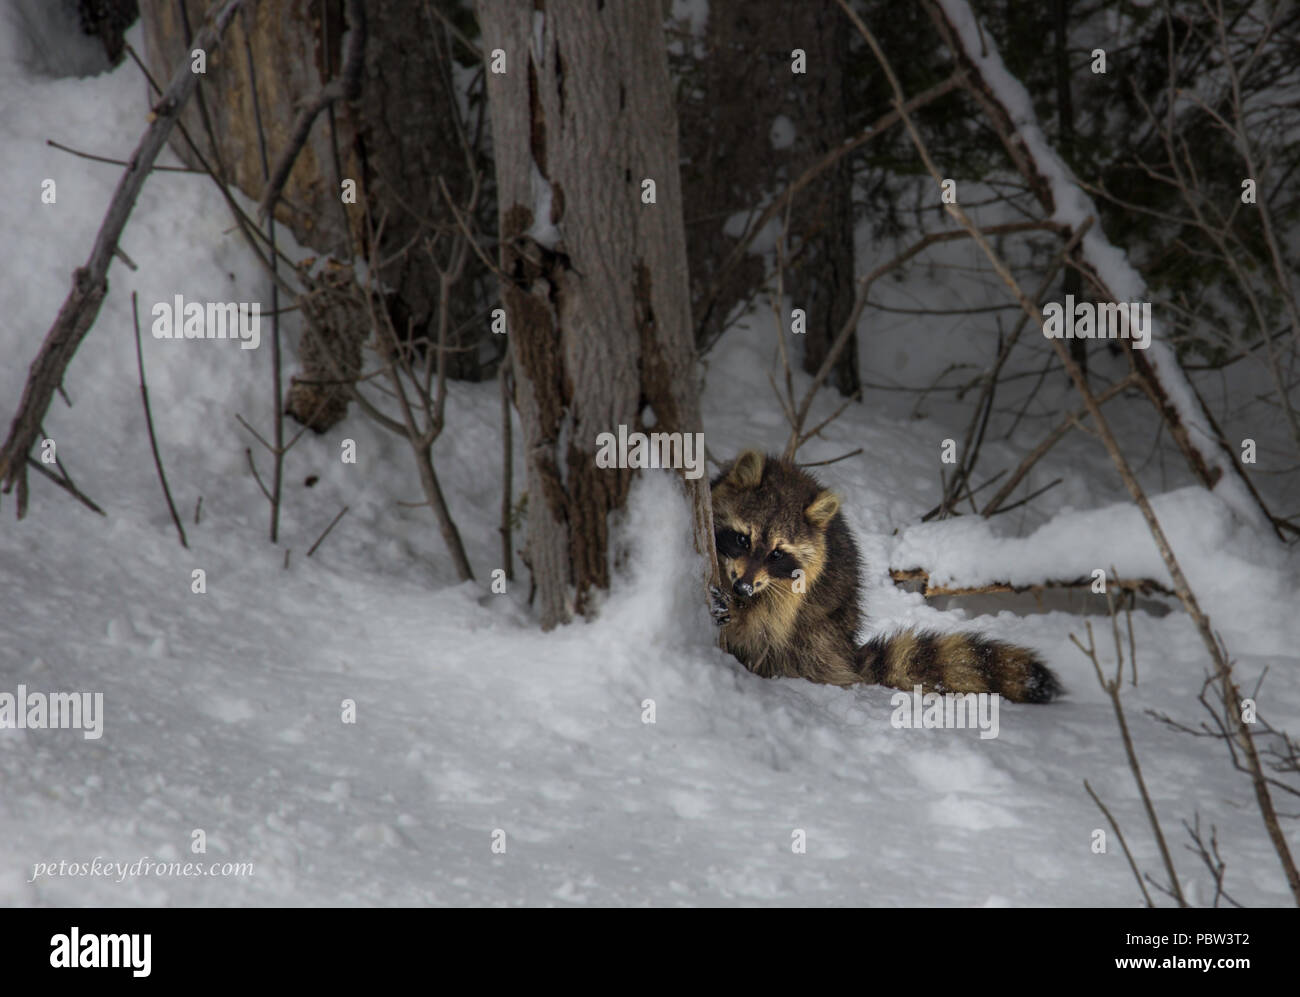 Shy racoon hiding behind a tree - Stock Image